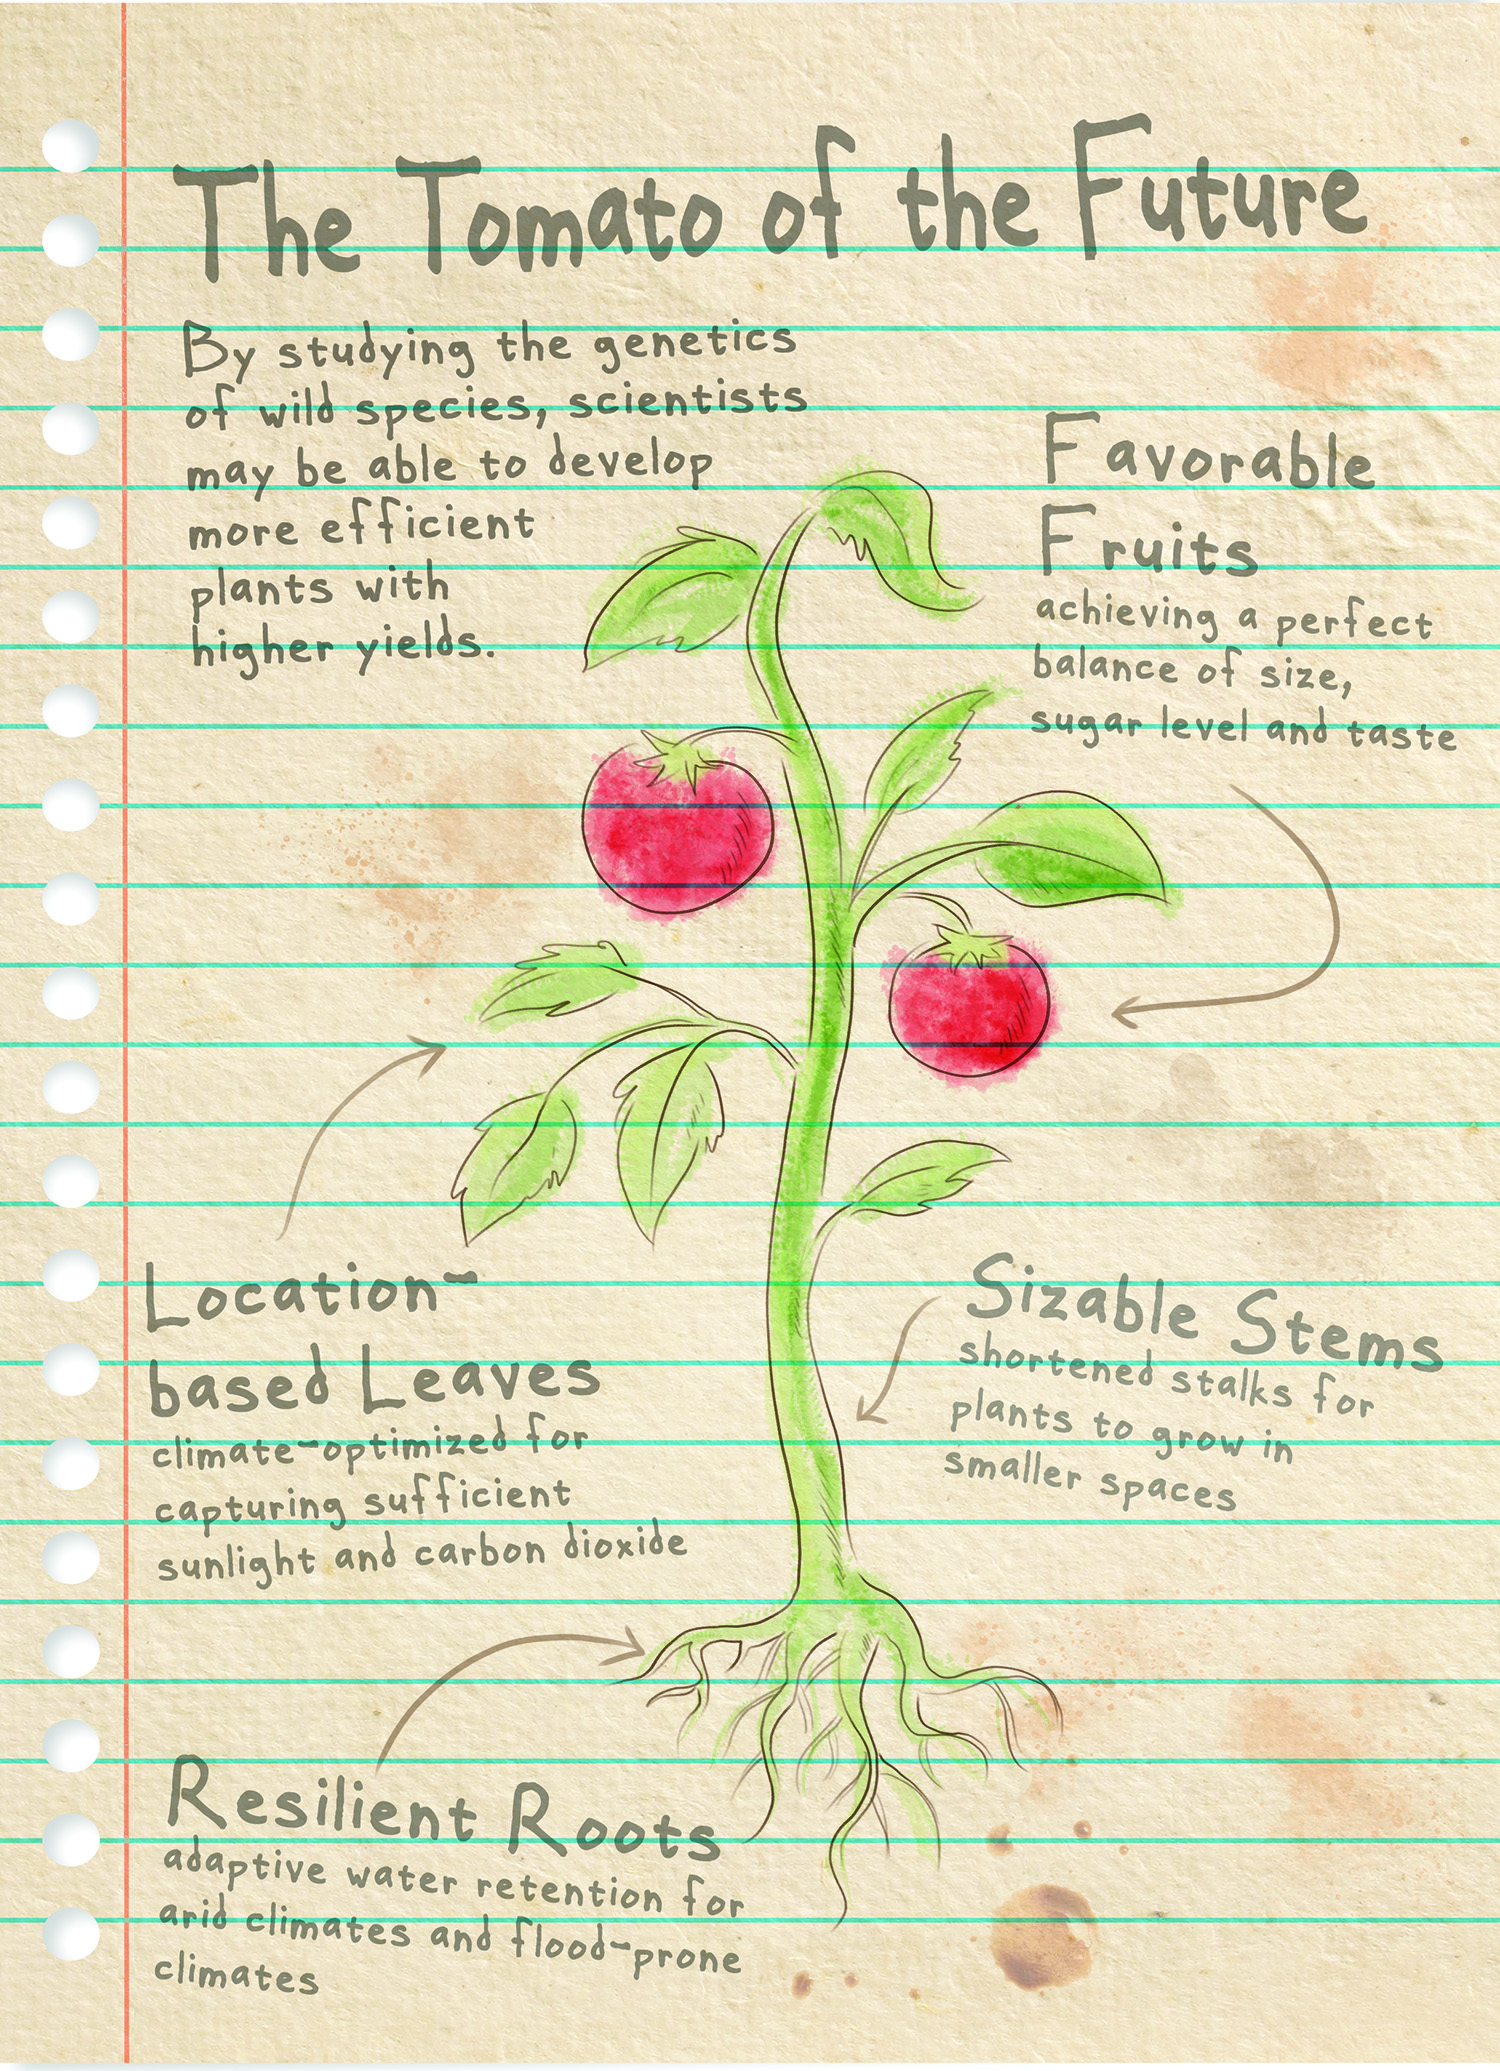 A field guide to the tomato of the future